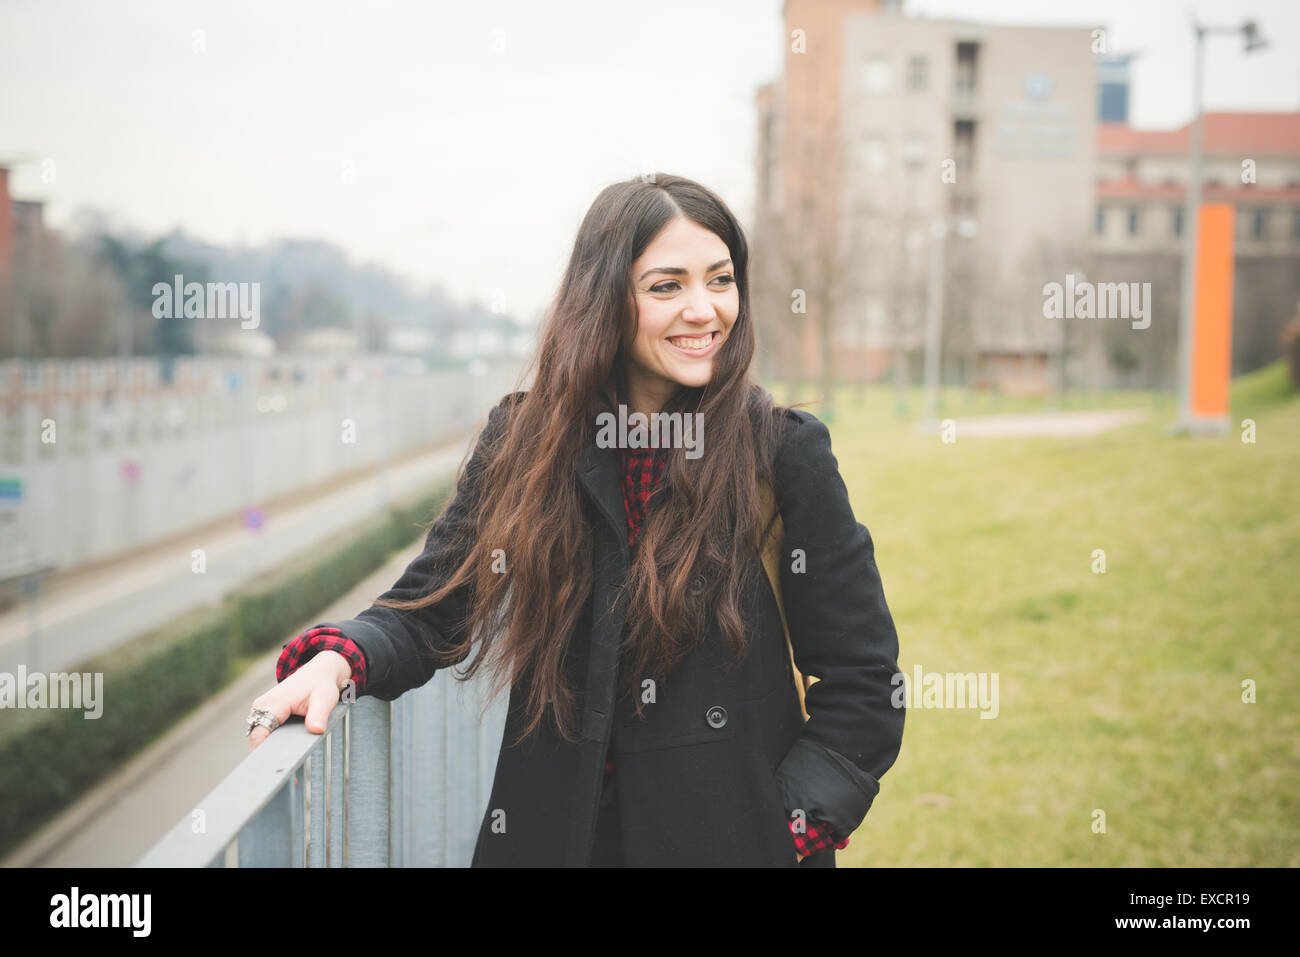 young beautiful long hair model woman living the city in winter outdoor city - Stock Image